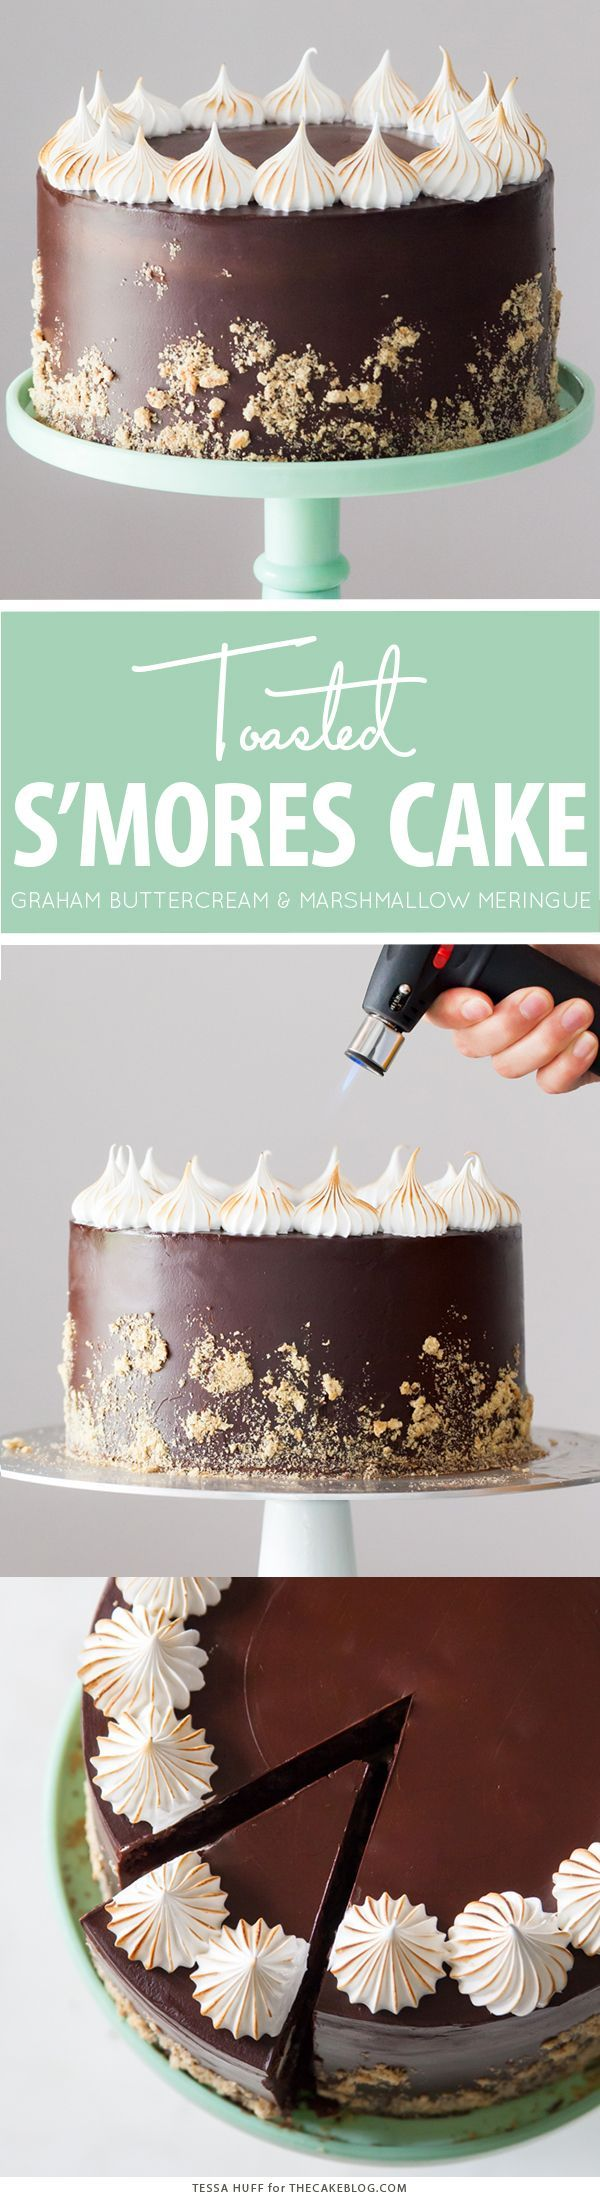 S'mores Cake - s'more inspired layer cake recipe with chocolate cake, graham cracker buttercream, chocolate ganache and toasted marshmallow meringue | by Tessa Huff for TheCakeBlog.com